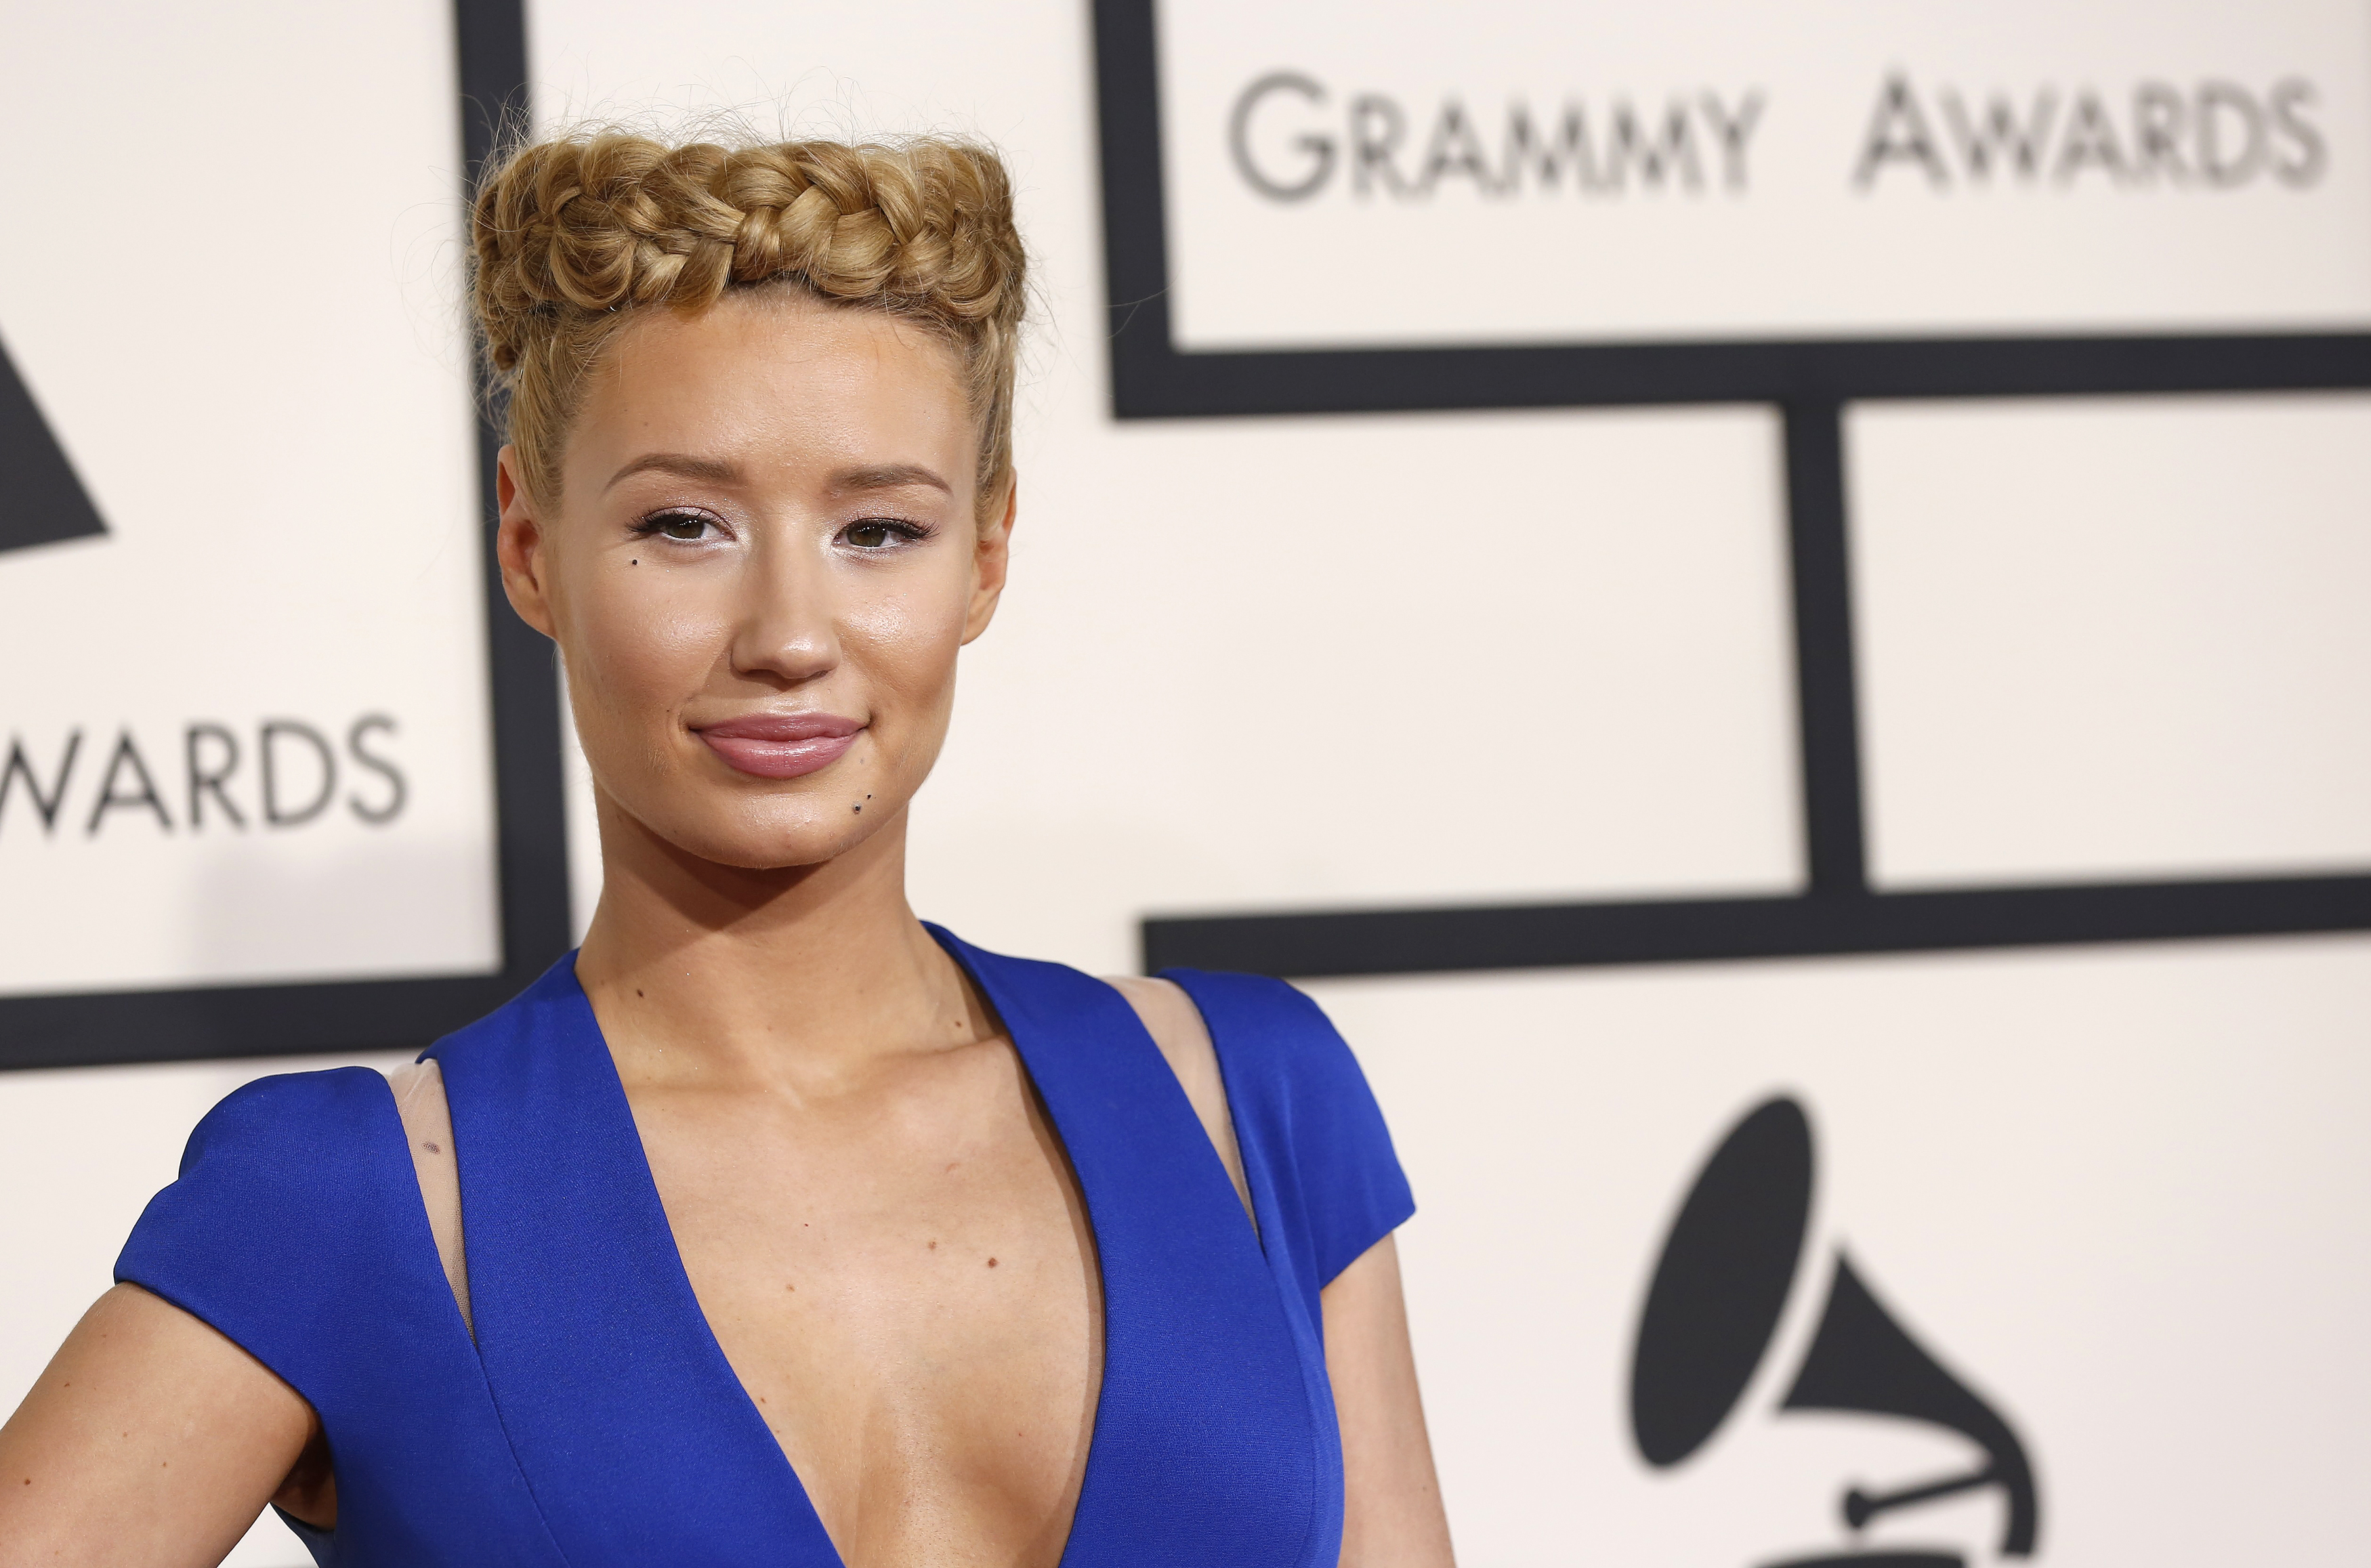 Rapper Iggy Azalea arrives at the 57th annual Grammy Awards in Los Angeles, California Feb. 8, 2015